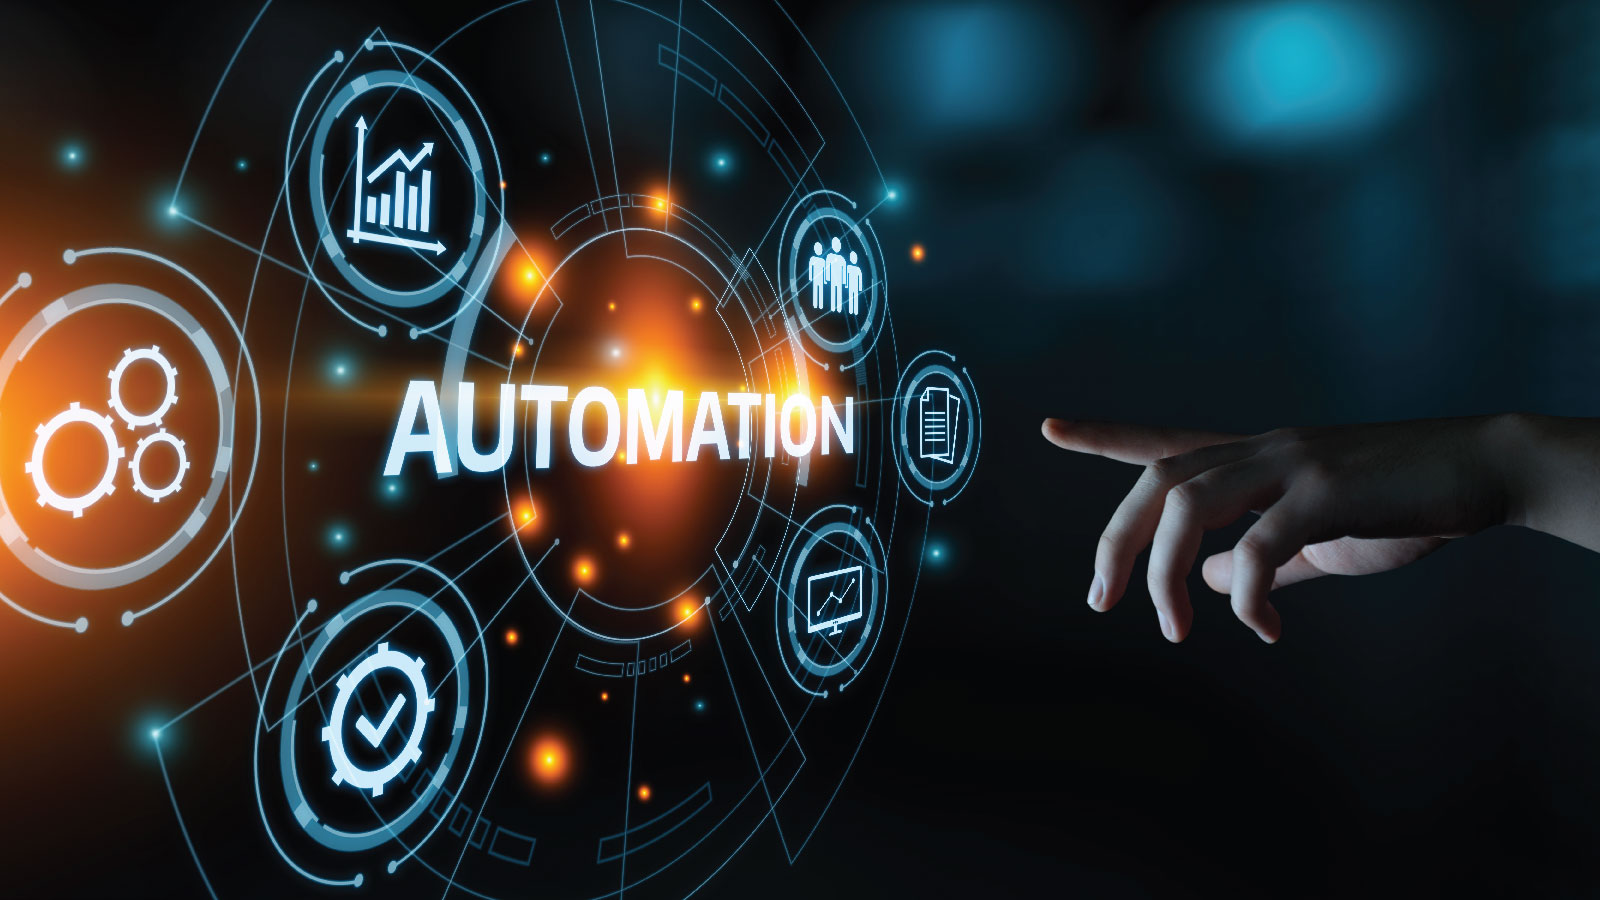 Automation, AR, VR, managers, Gartner, workforce, learning and development, AI, significant talent shortage, technology systems, talent shortage, AI-adoption CTO, CEO, automation, Gartner, AI, managers,